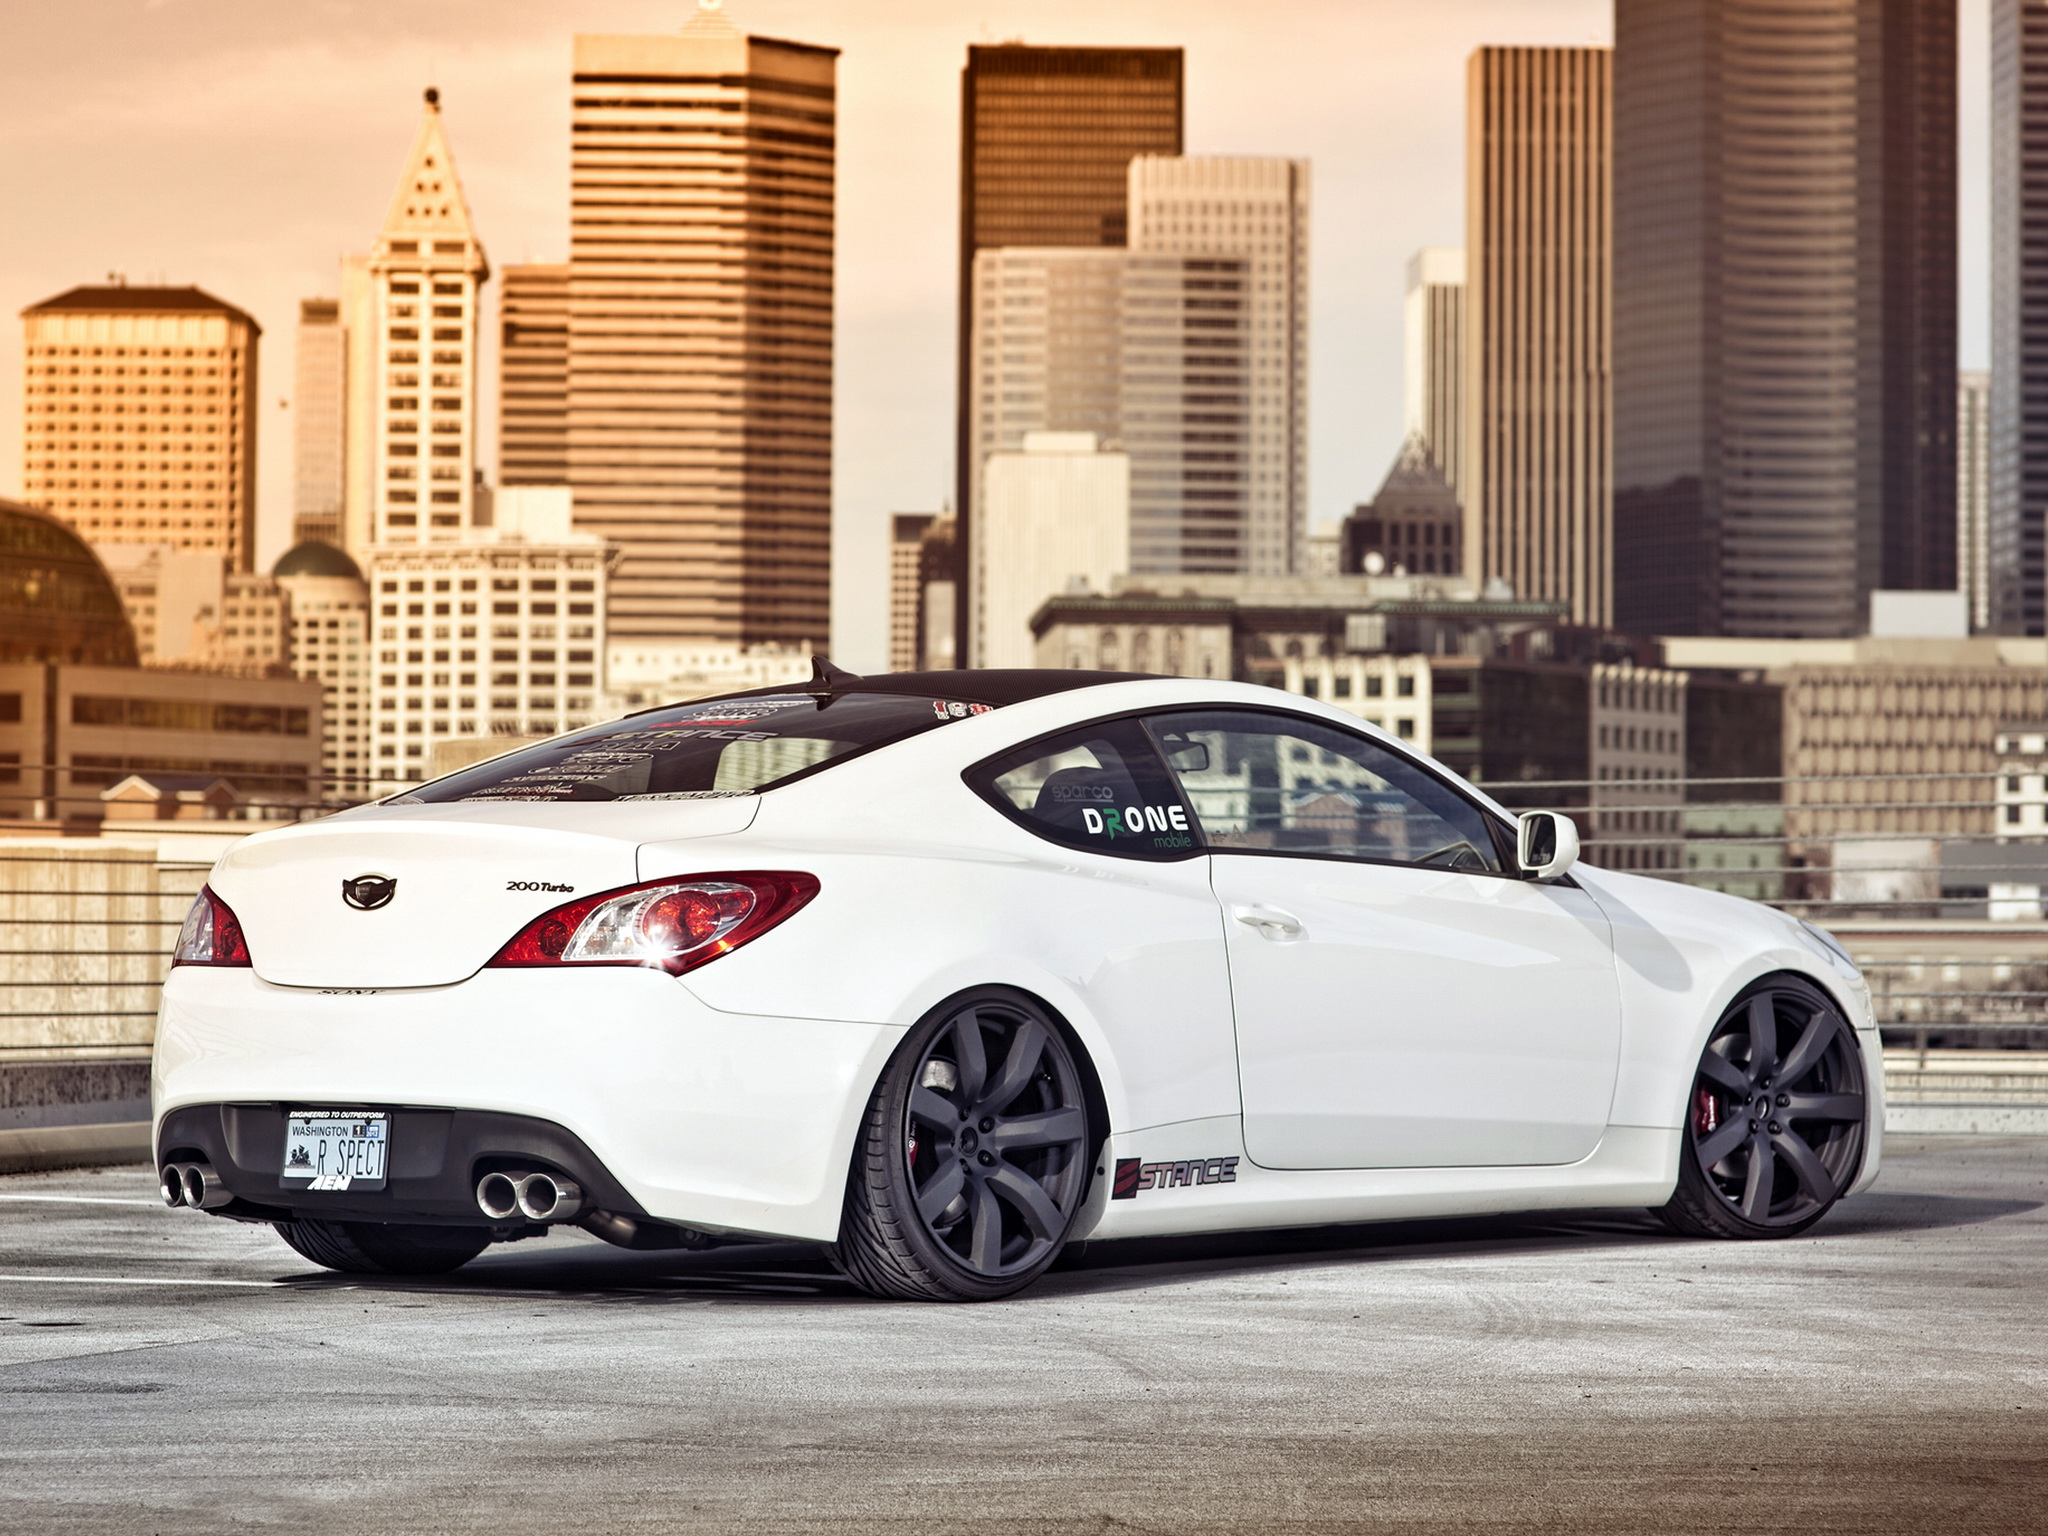 Hyundai Images Hyundai Genesis Coupe By Mad Panda Hd Wallpaper And